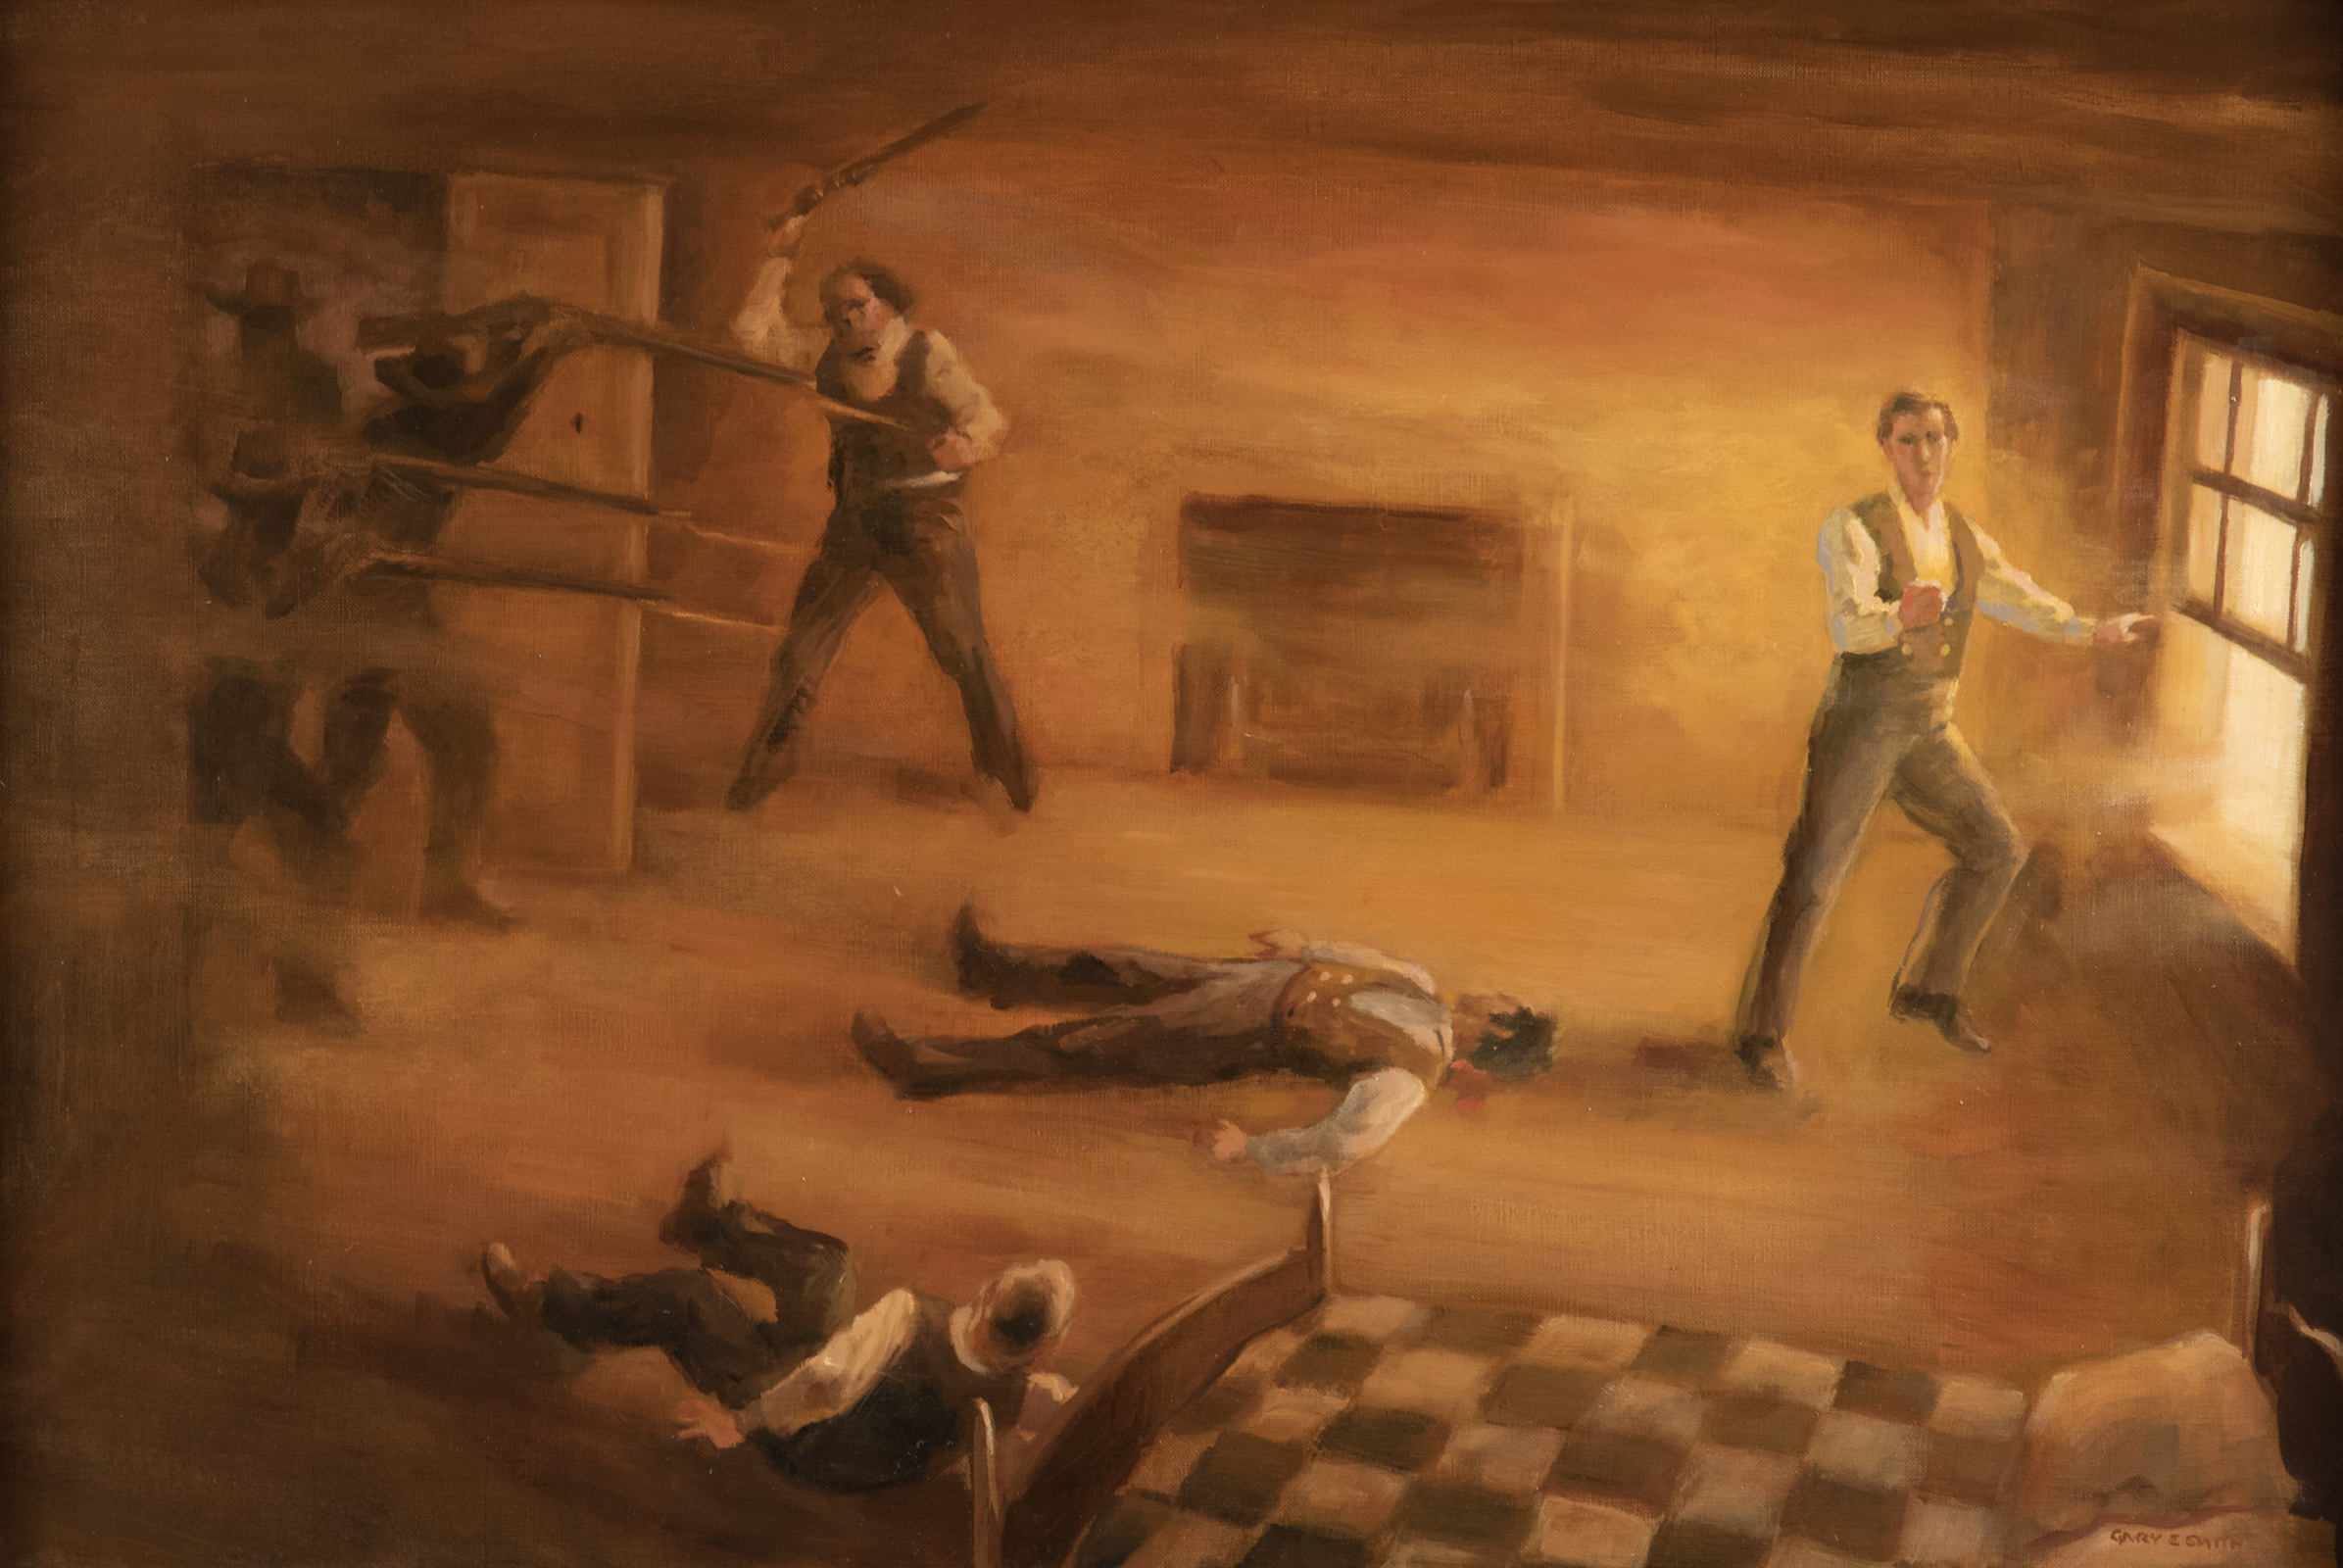 The Martyrdom of Joseph Smith  by Gary Ernest Smith. Oil on Linen. 20 x 30 in. Collection of the Artist.